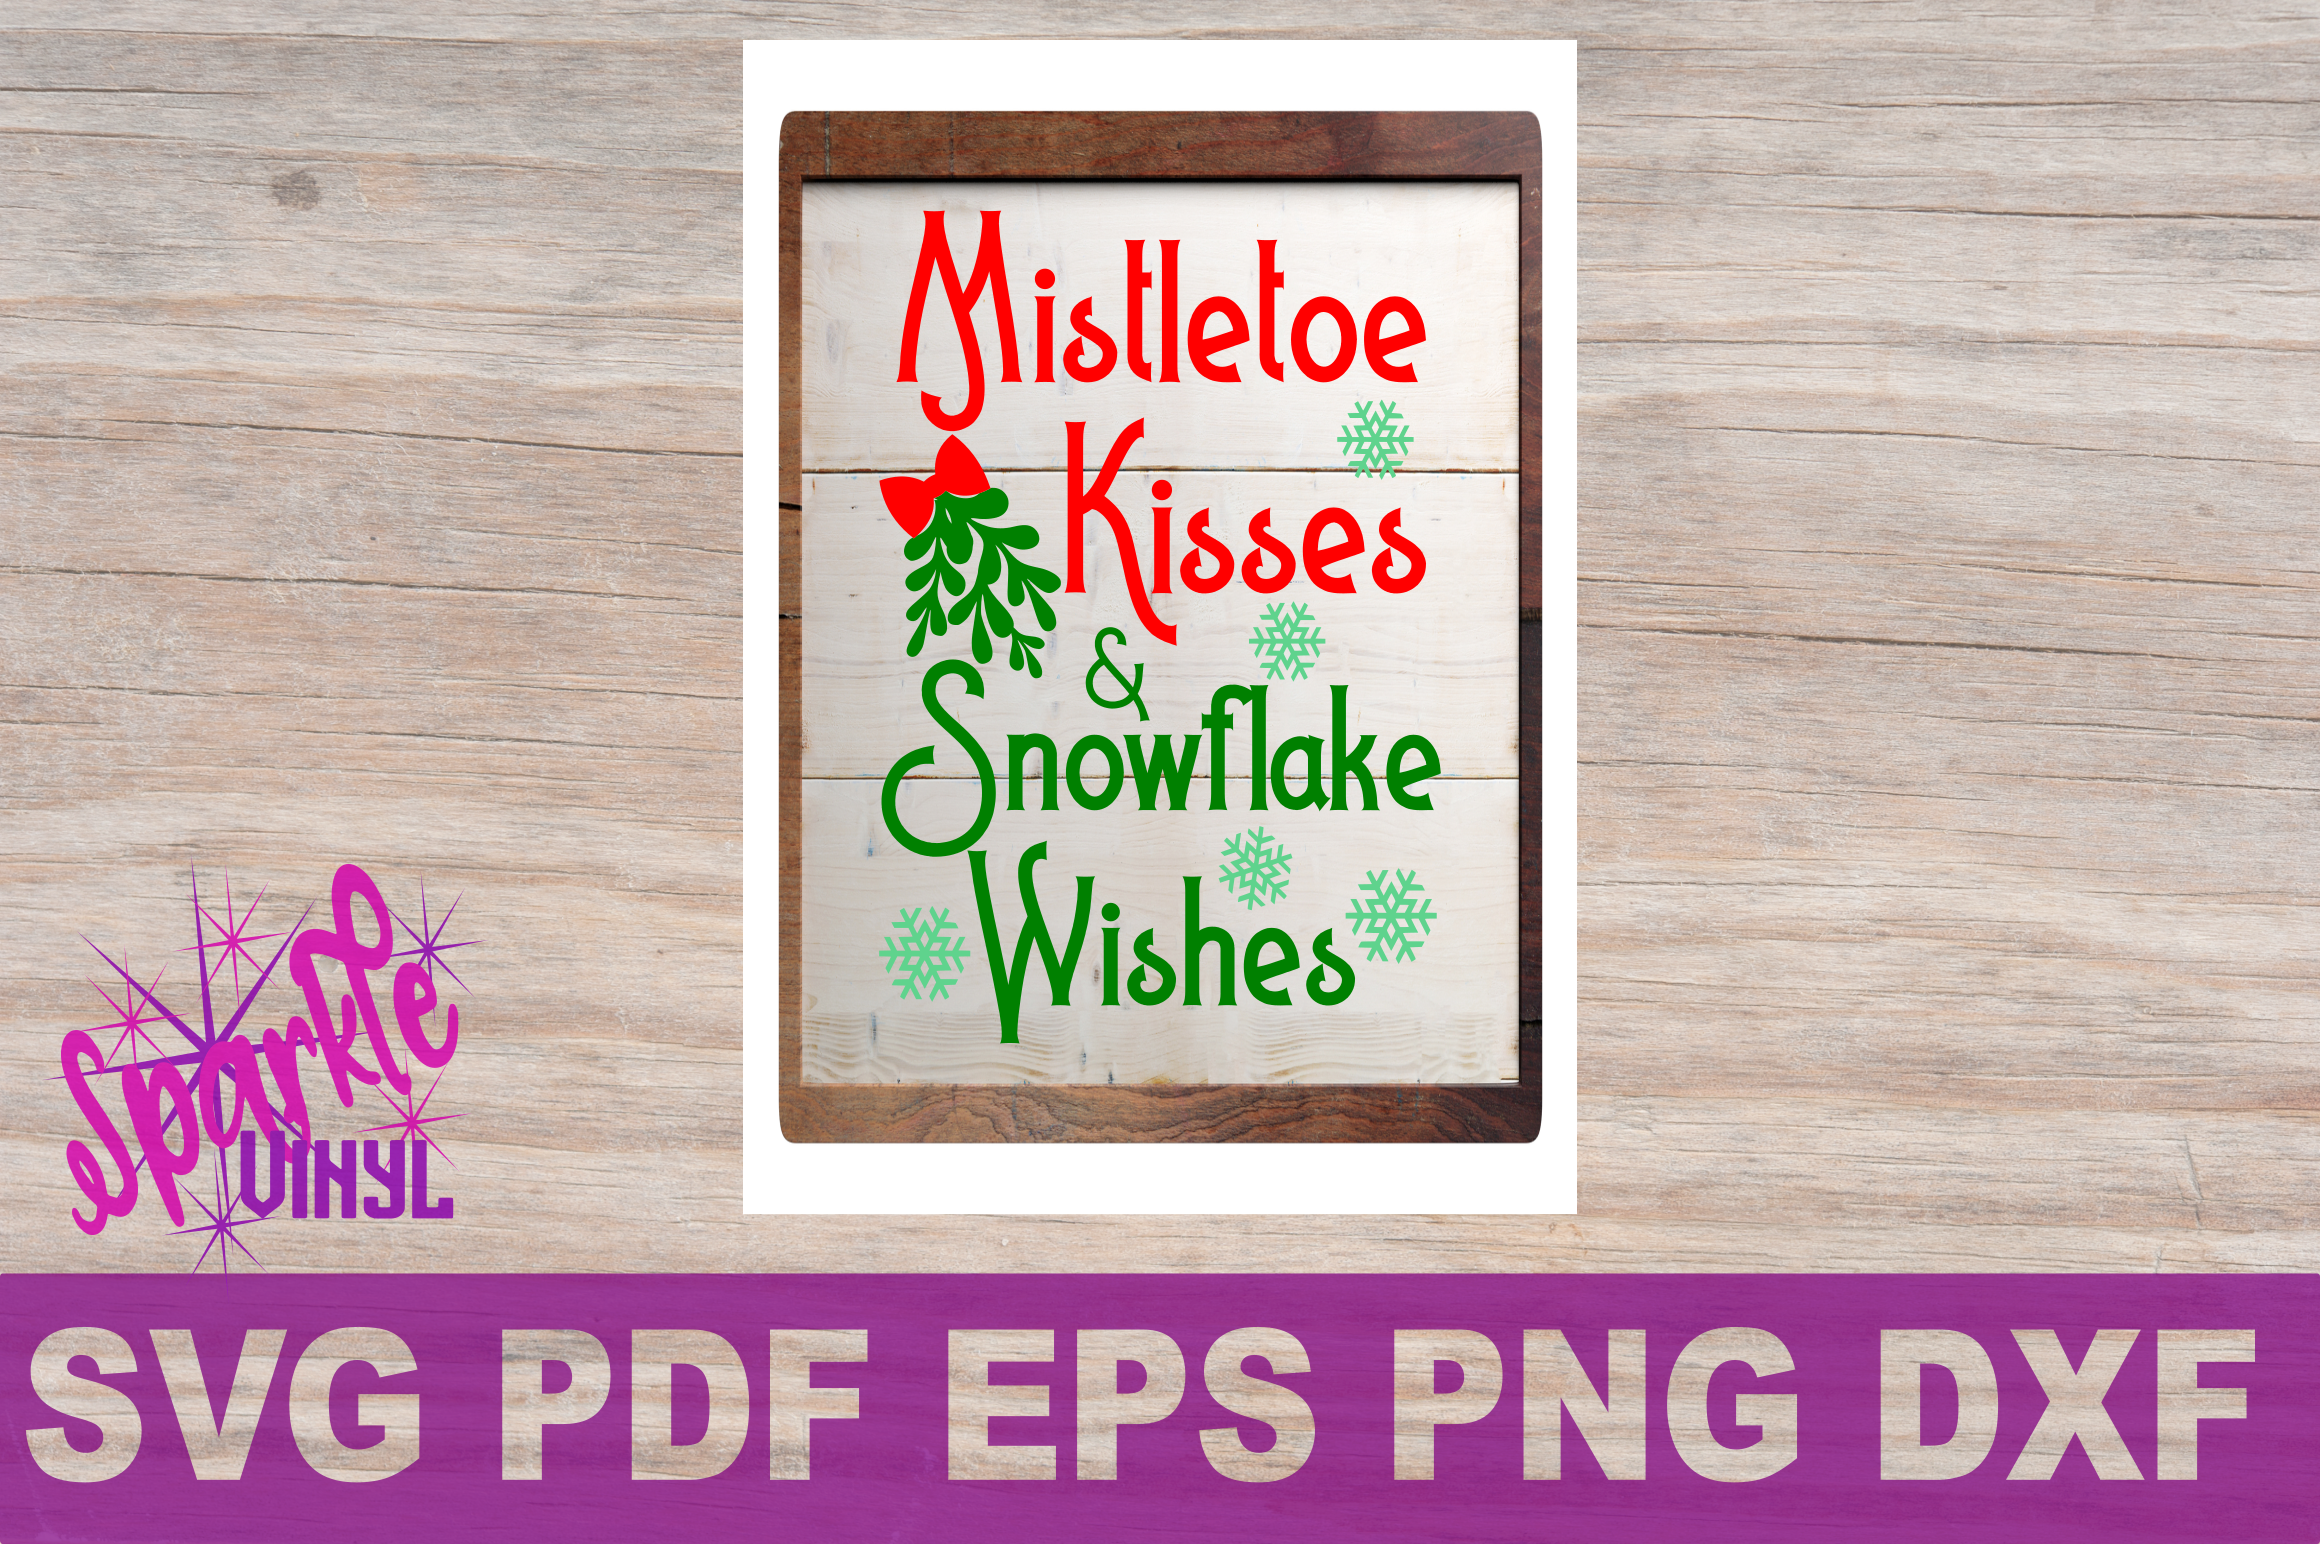 Svg Christmas Sign Stencil Bundle printable svg dxf png pdf esp files for cricut or silhouette Merry Christmas Trees Sold here Mistletoe svg example image 6